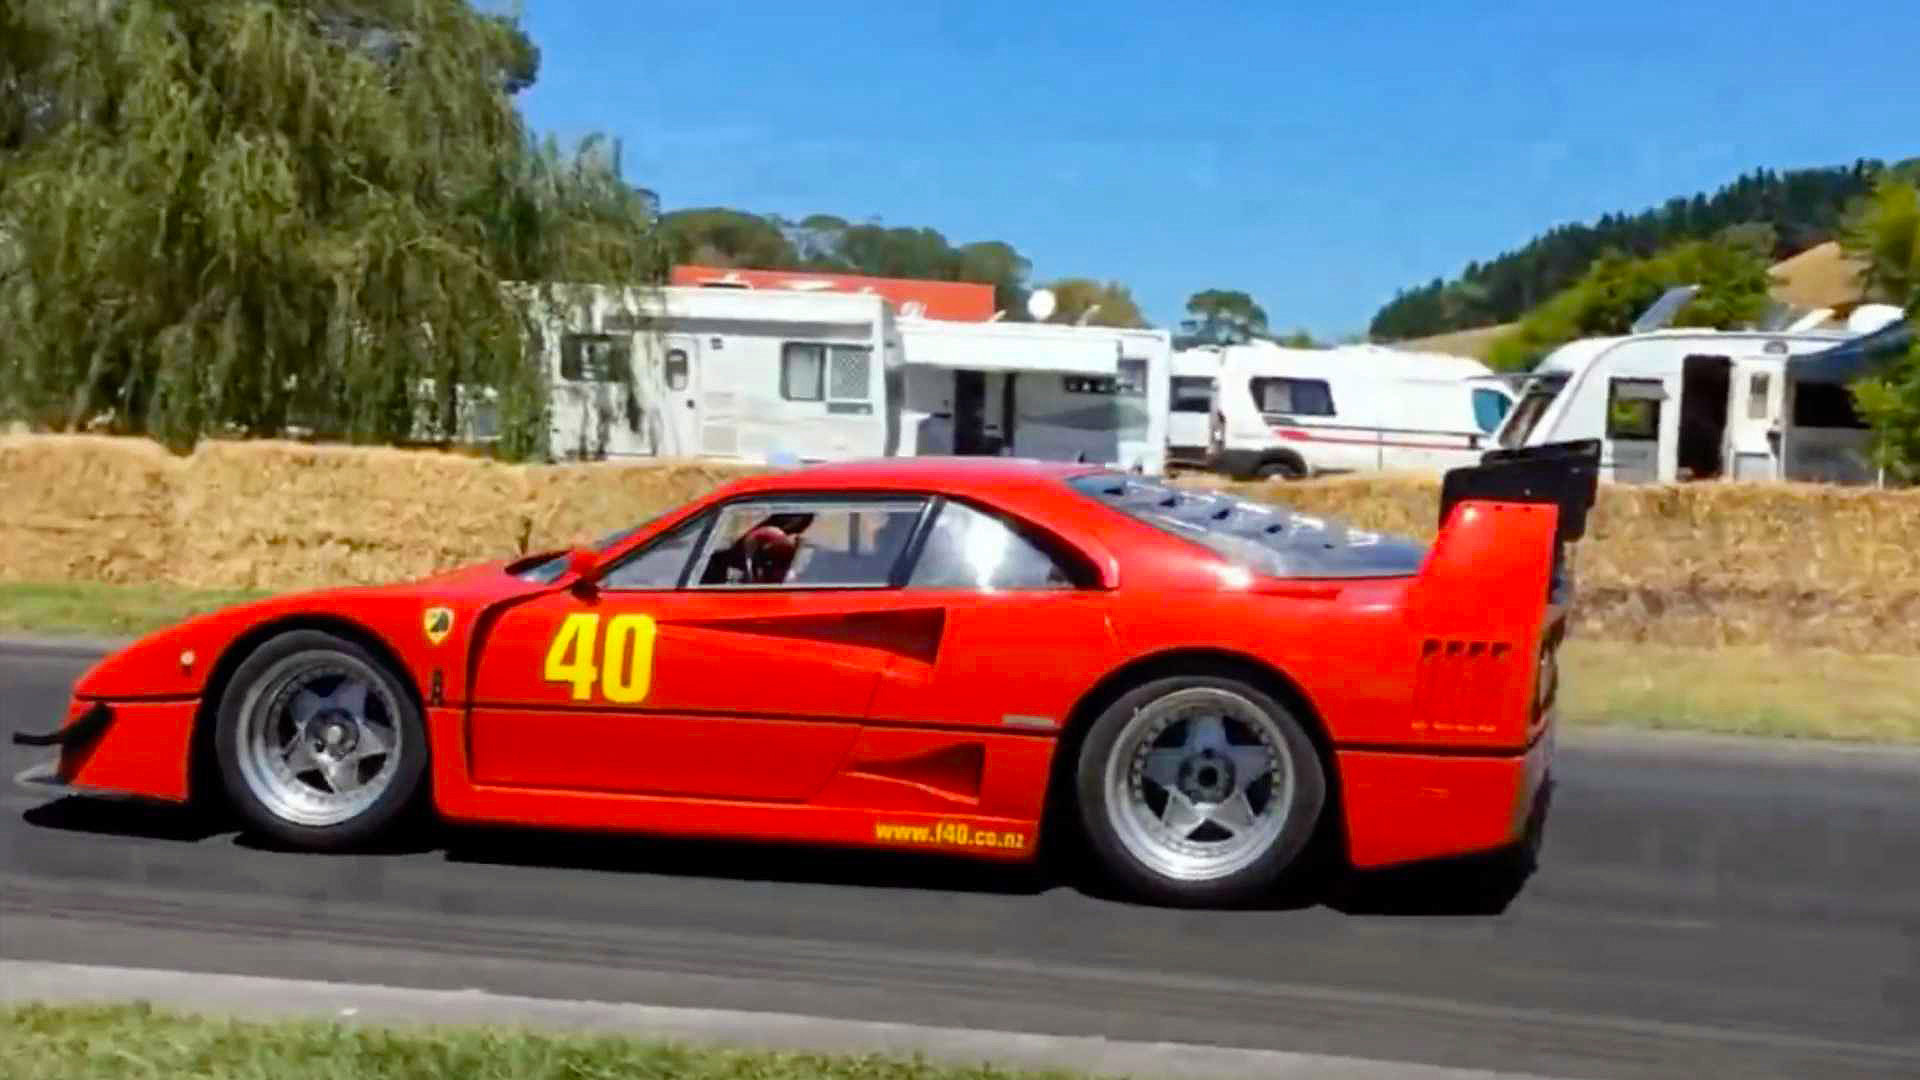 ferrari f40 lm replica left side profile